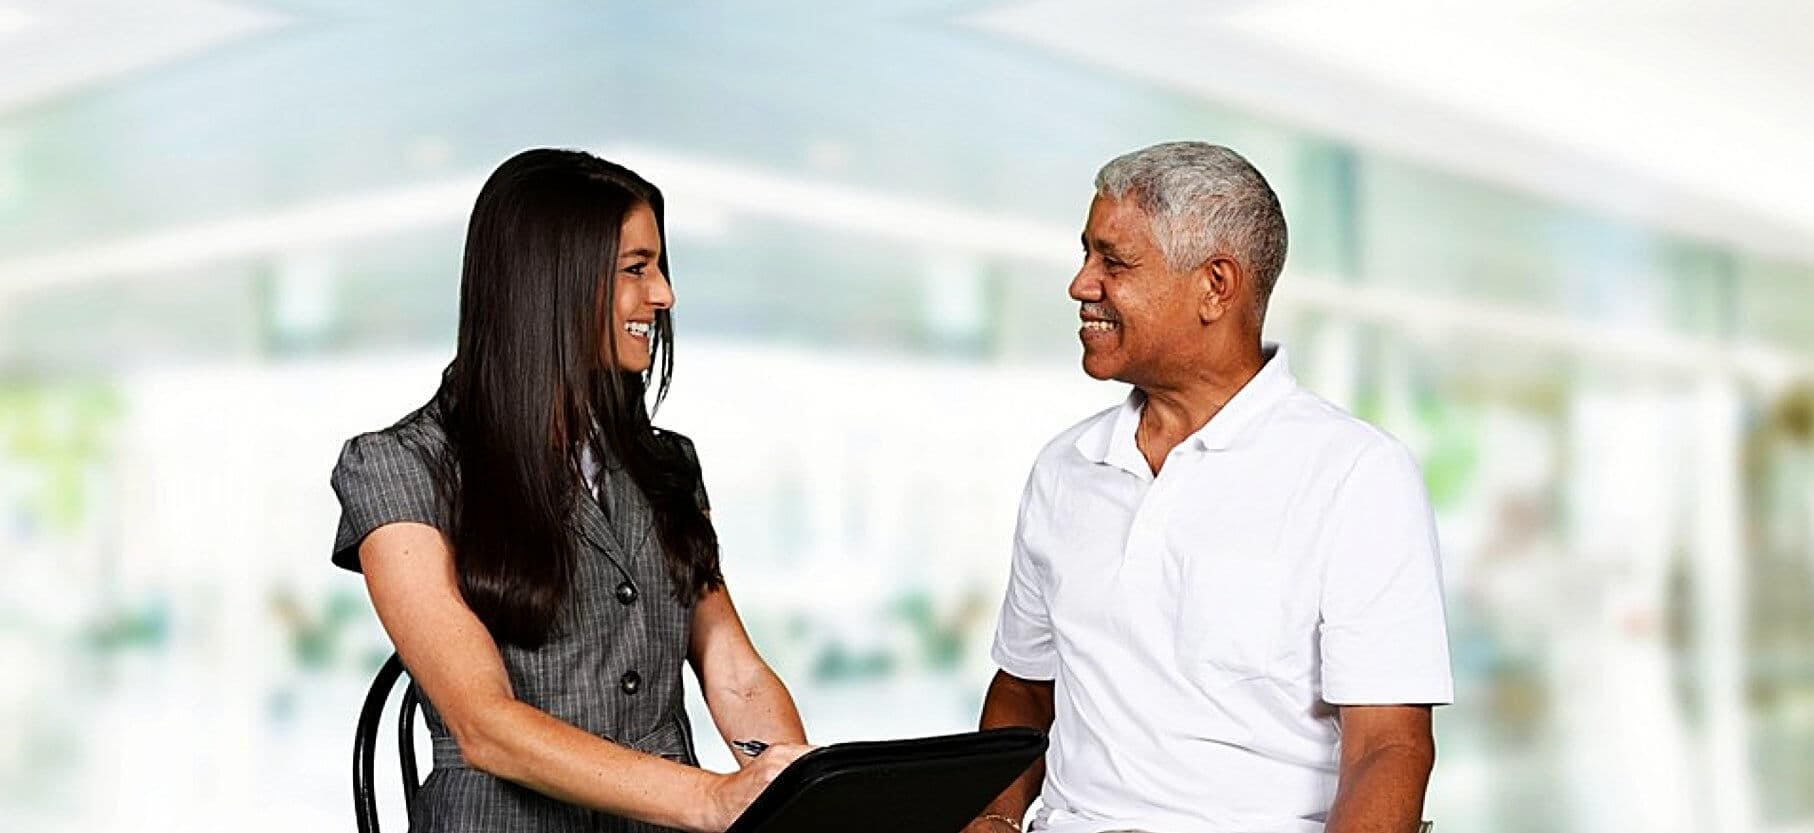 adult woman and senior man looking at each other while smiling